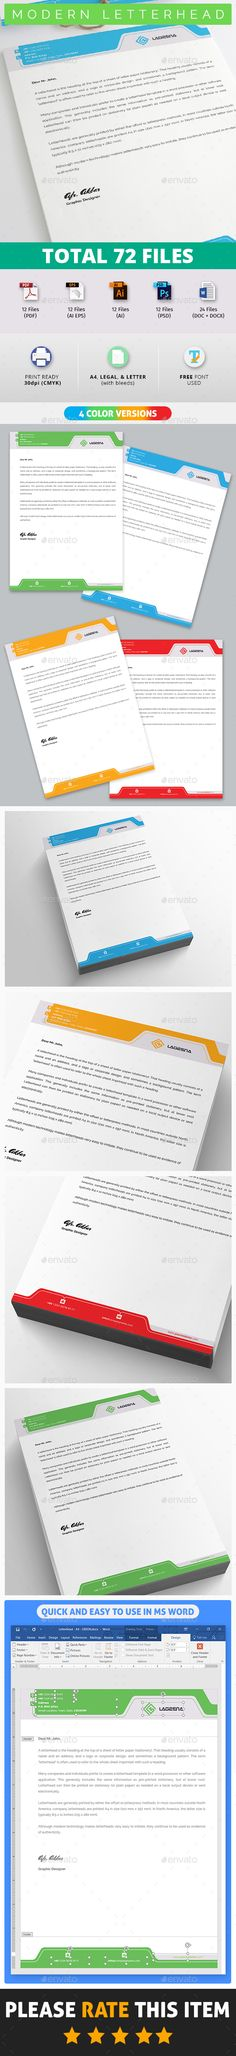 Letterhead Design Template for Fast Food   Restaurants   Cafe - letterhead samples word